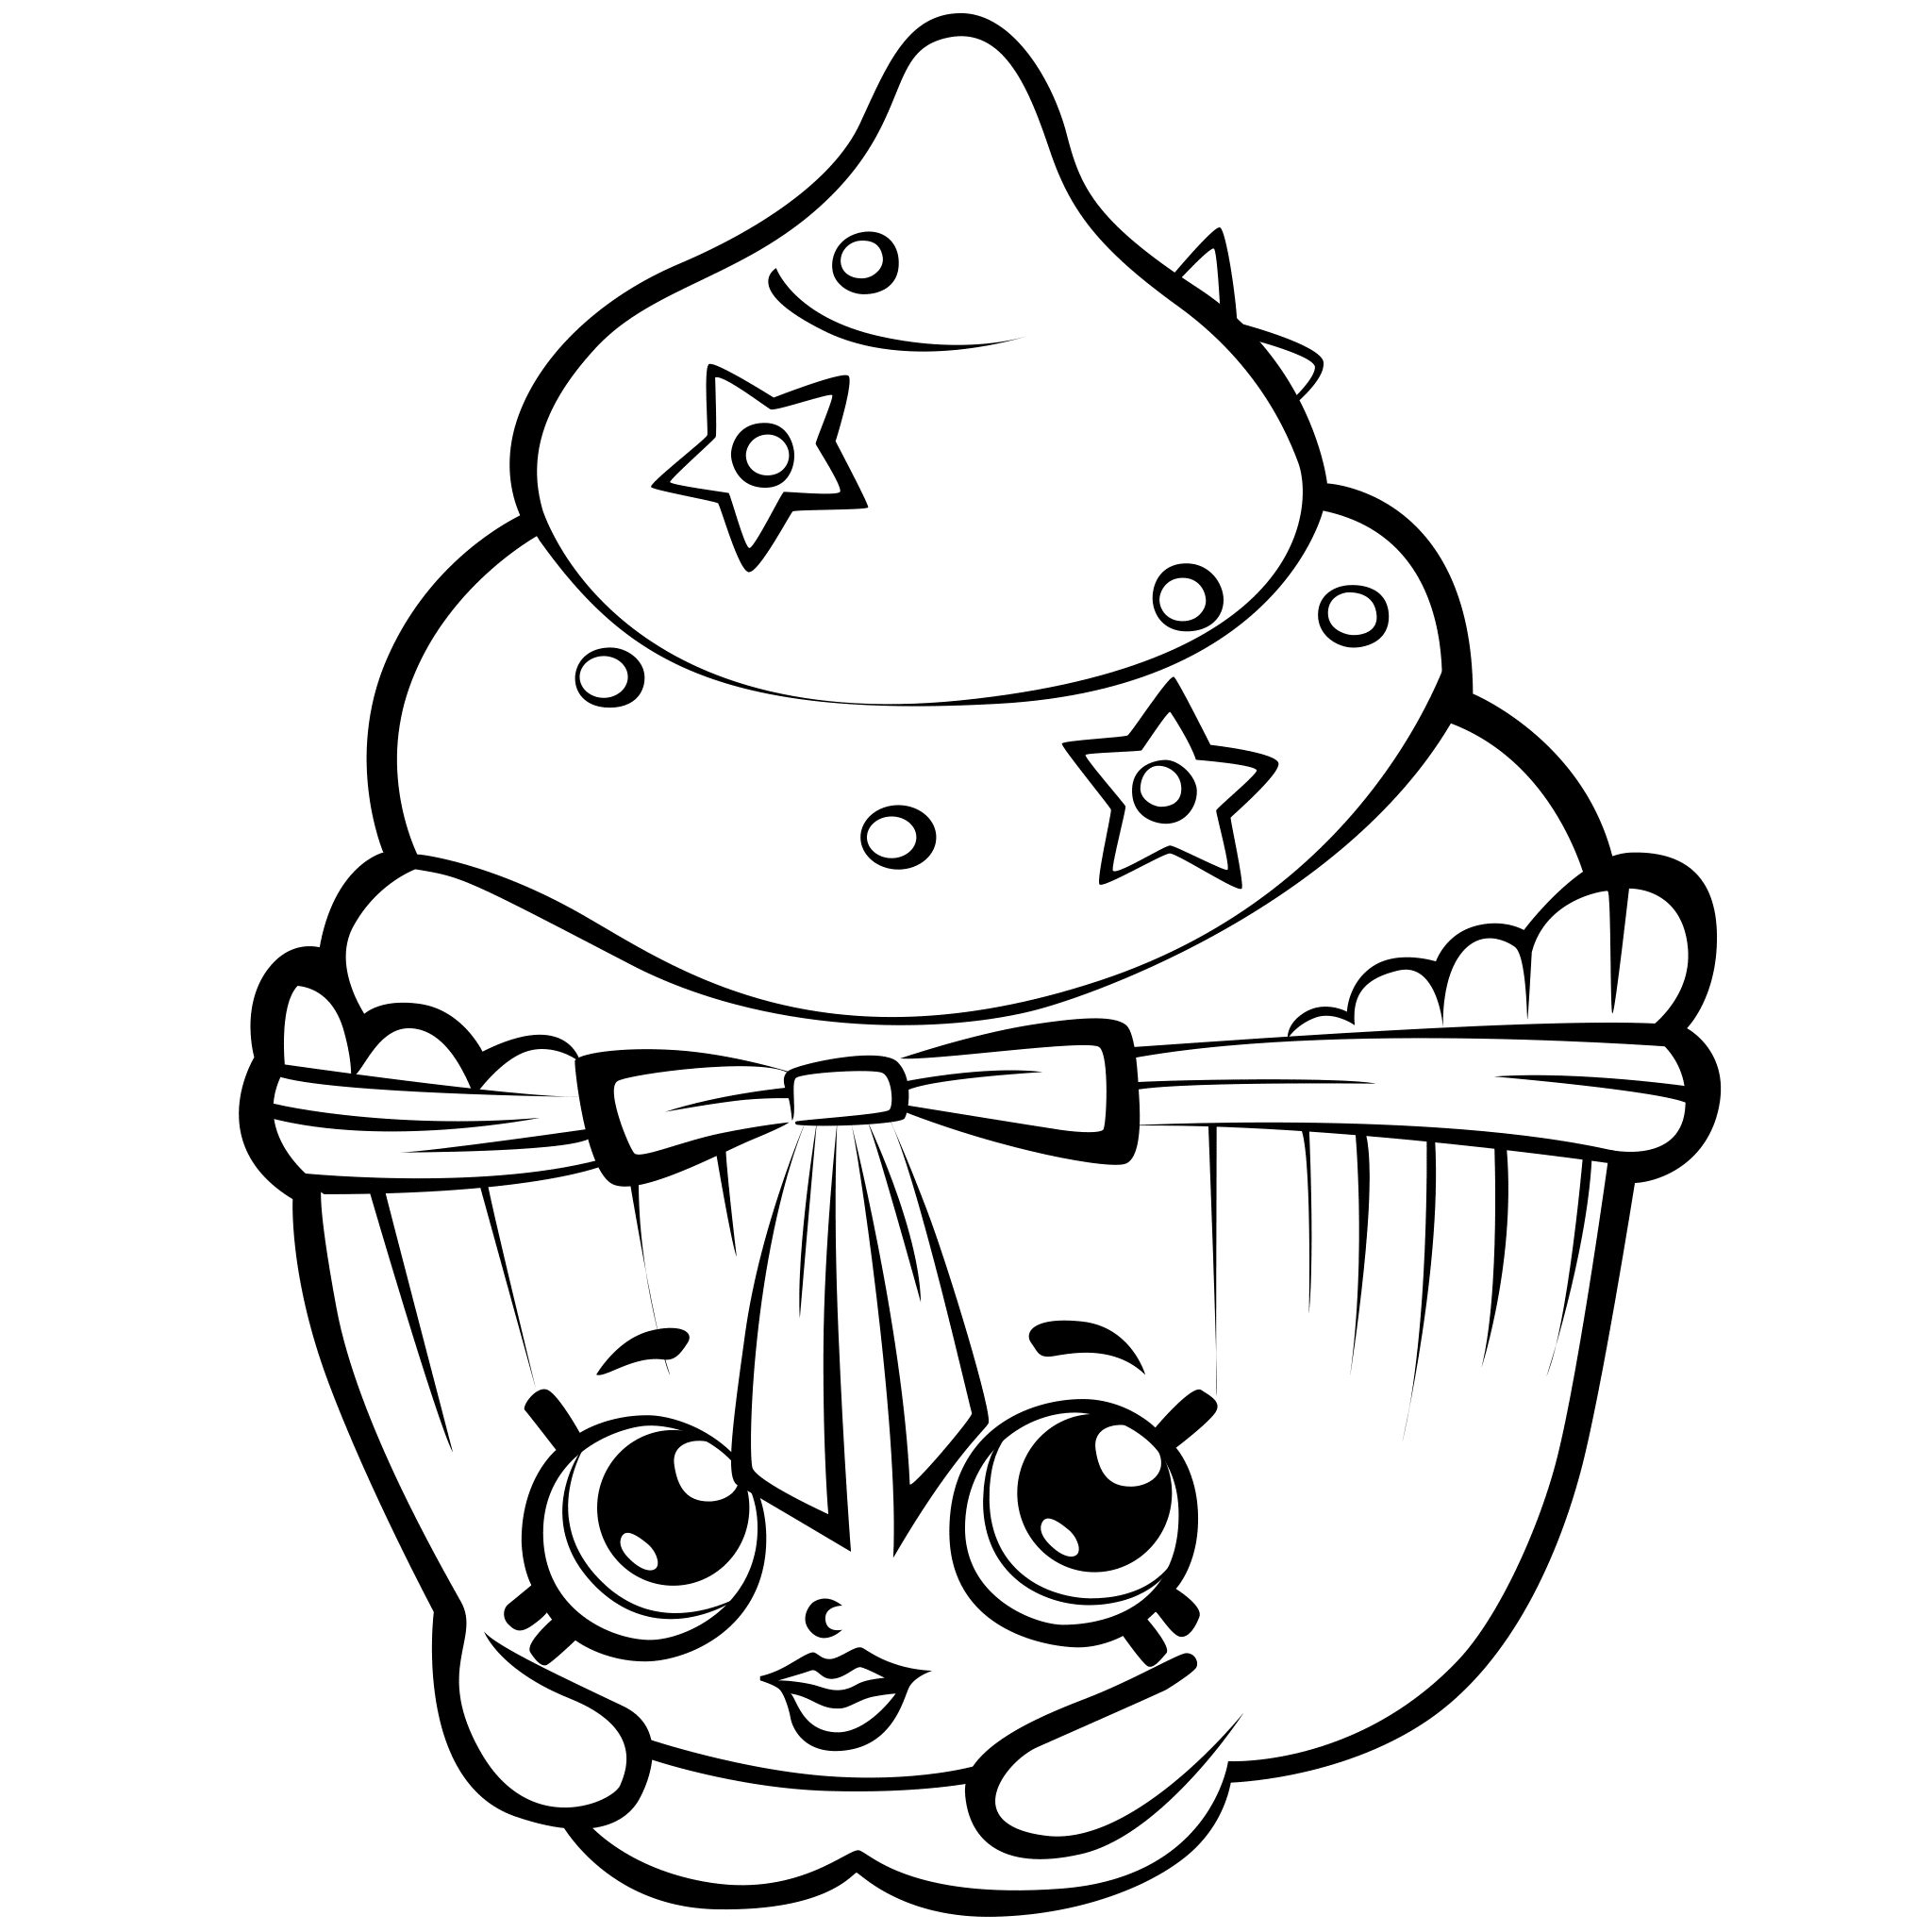 Shopkins Coloring Pages Best For Kids Printable Of Print Soda Pops Season 1